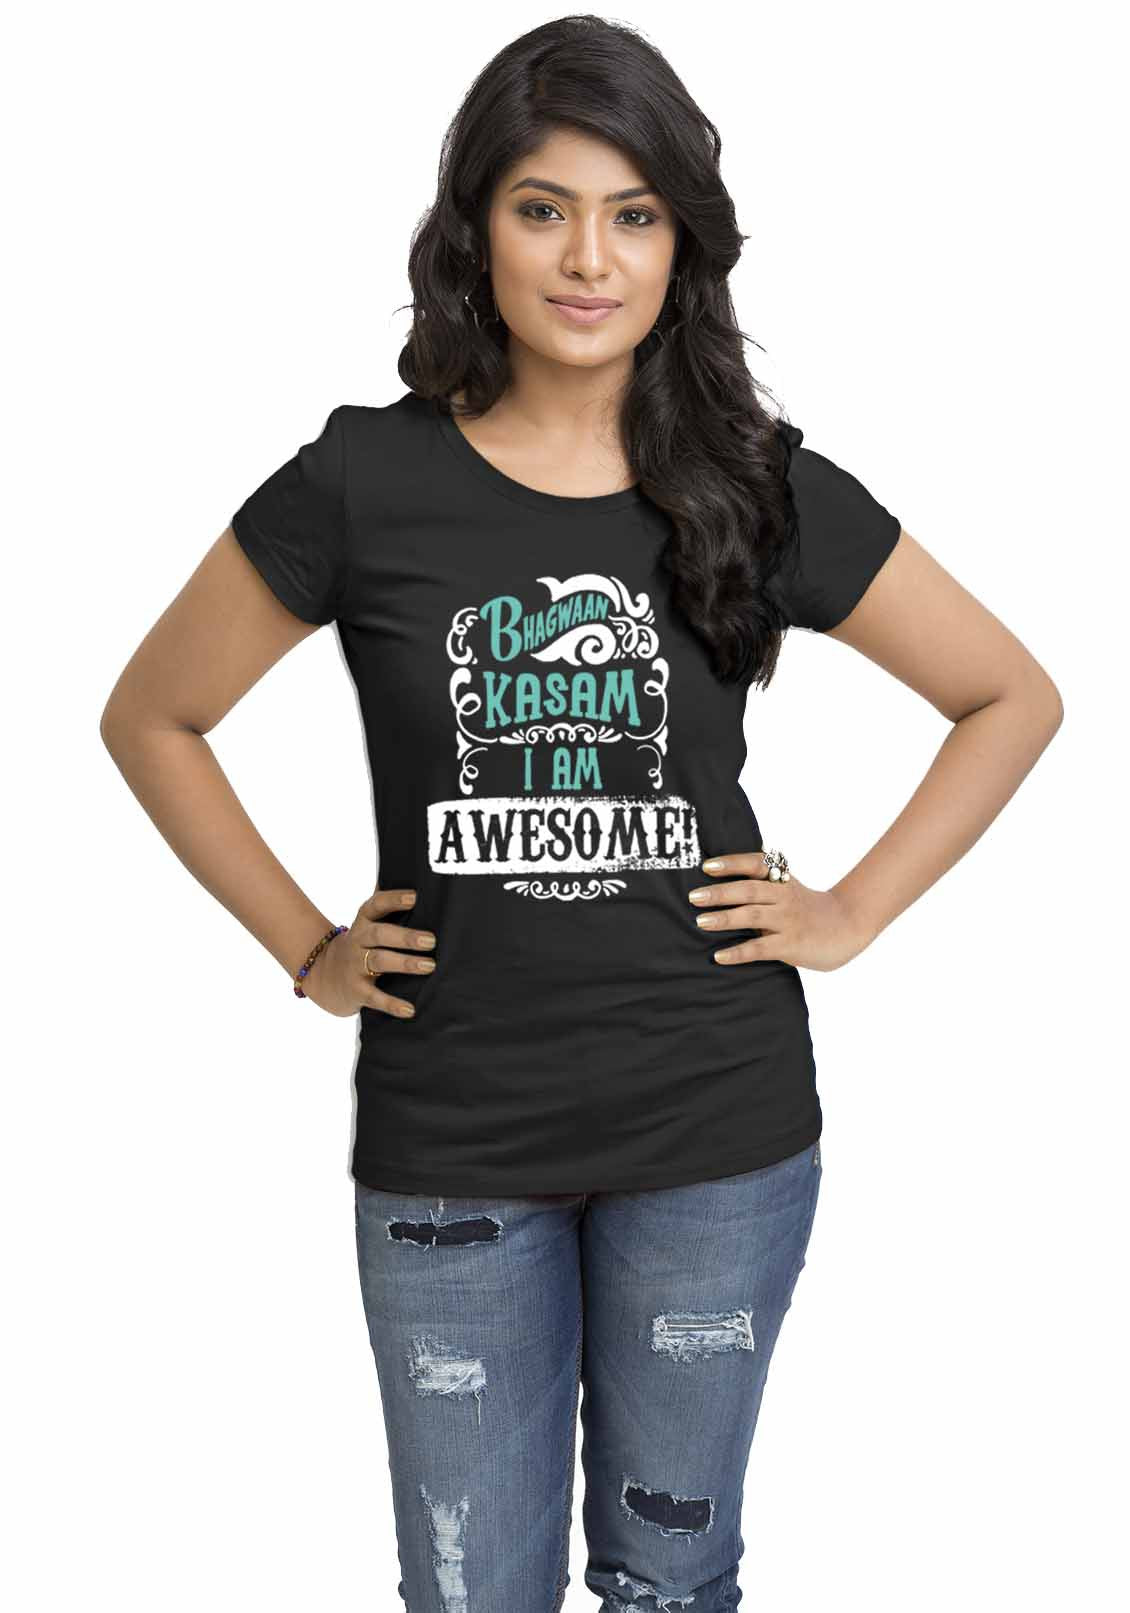 045782ac7b6 T Shirts for Women - Buy Ladies T Shirts Online in India – Wear Your ...